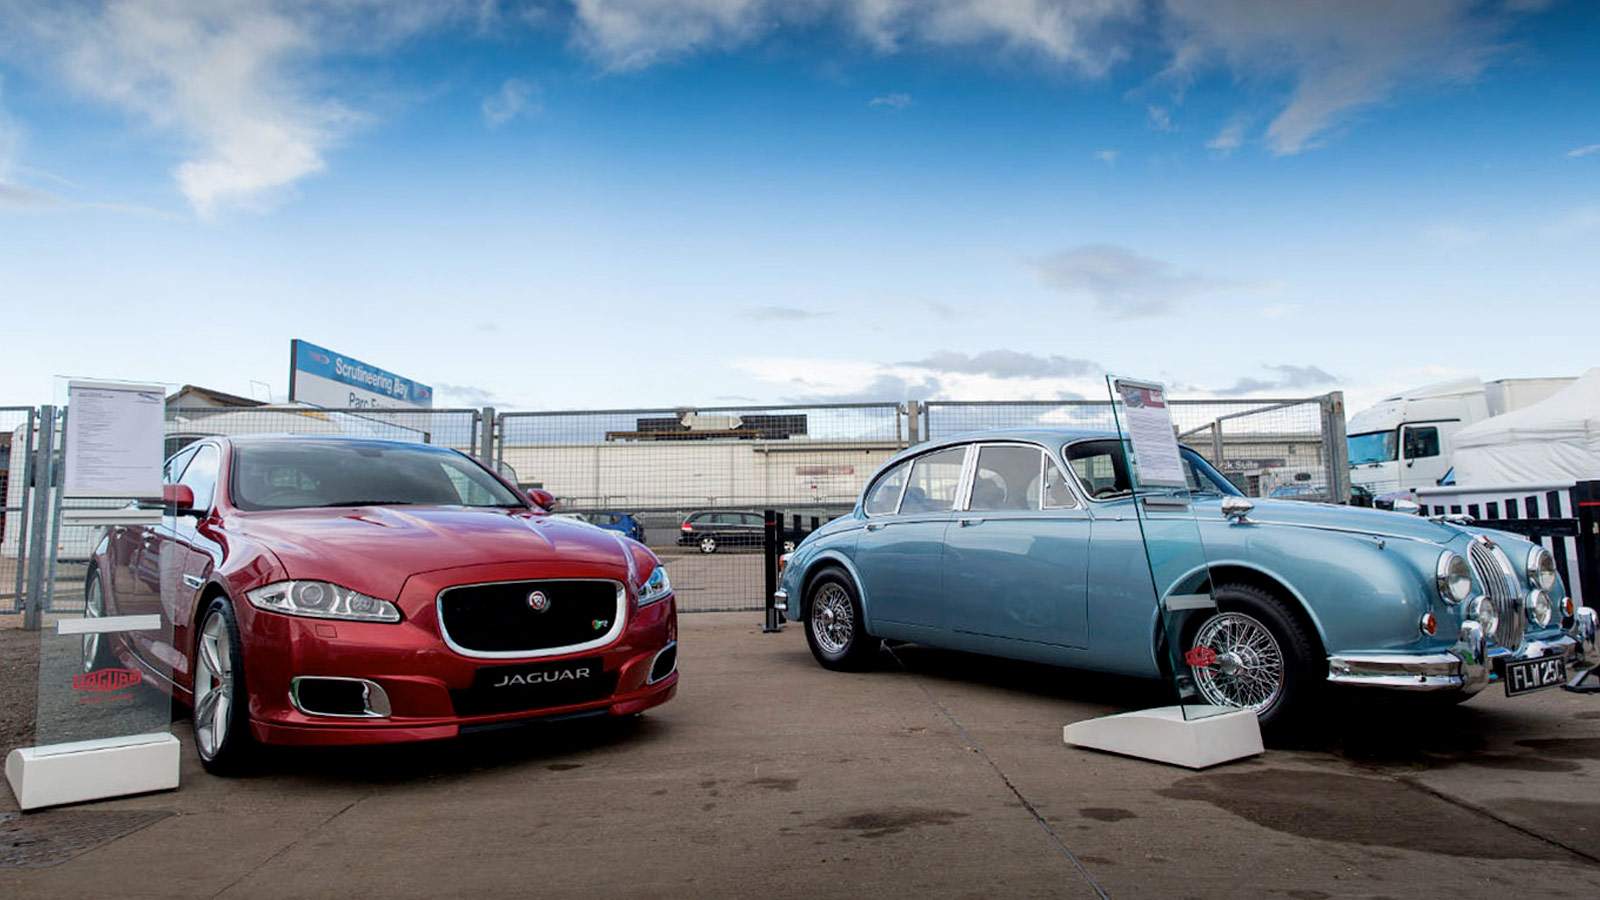 two Jaguar's parked at the heritage challenge.